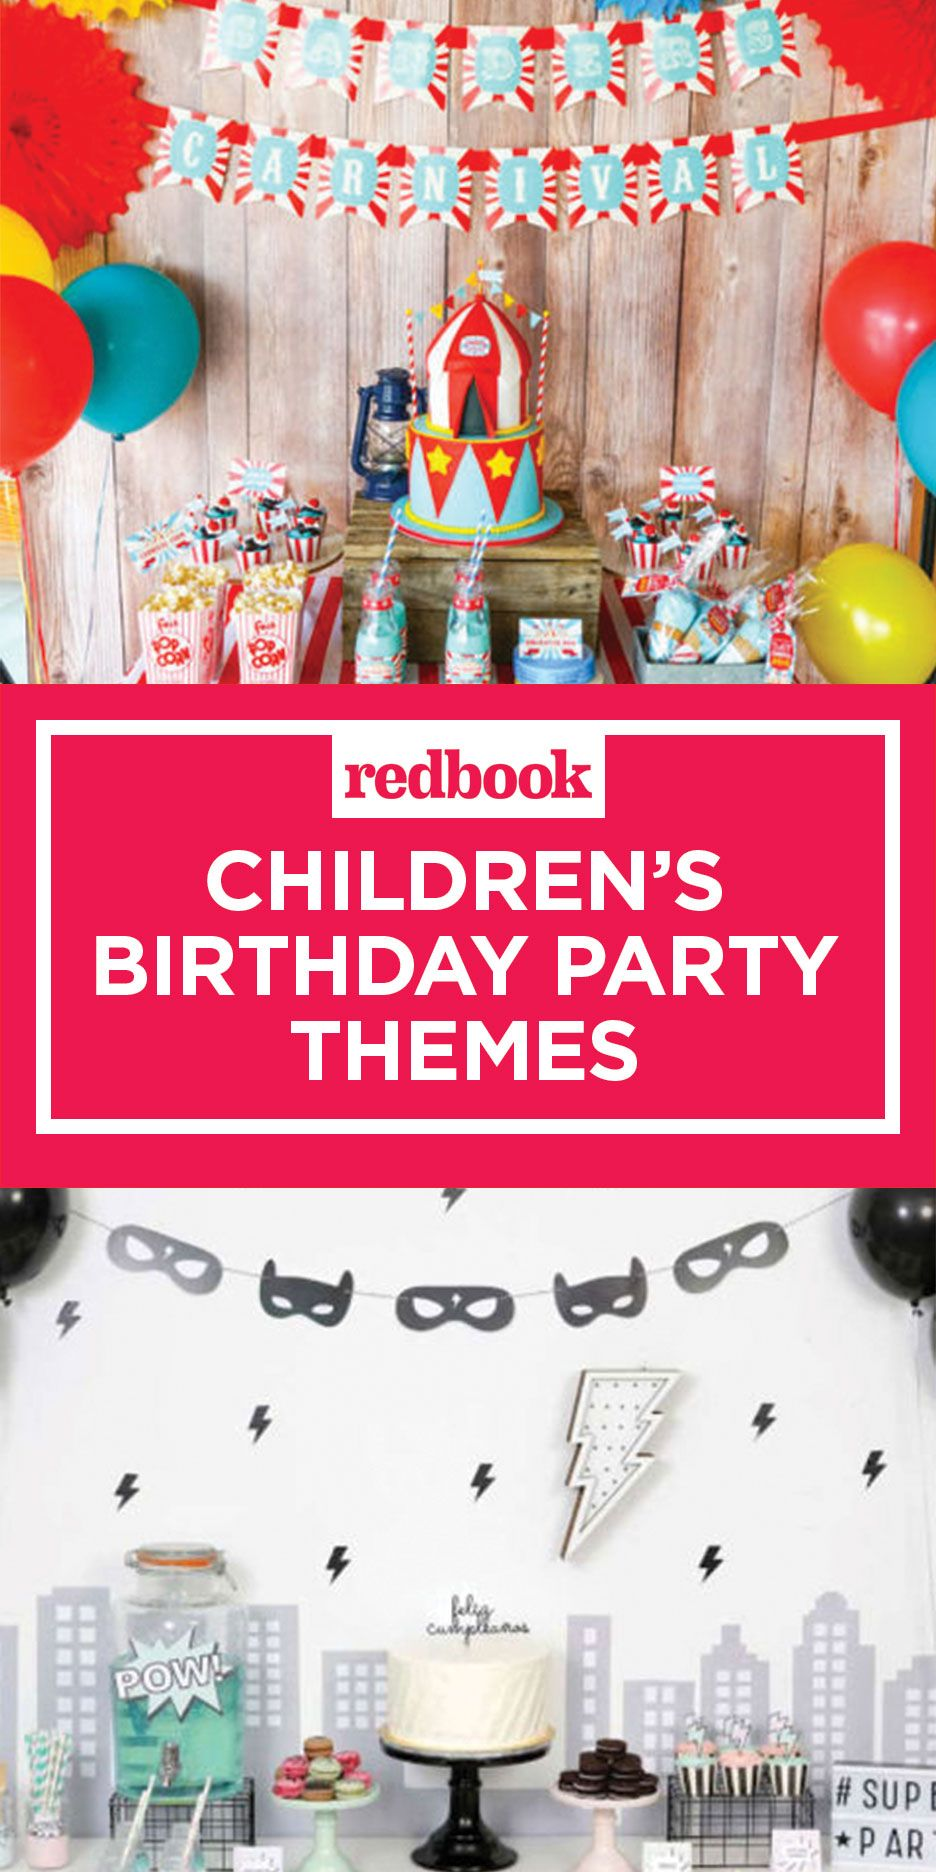 Thematic birthday for adults and children